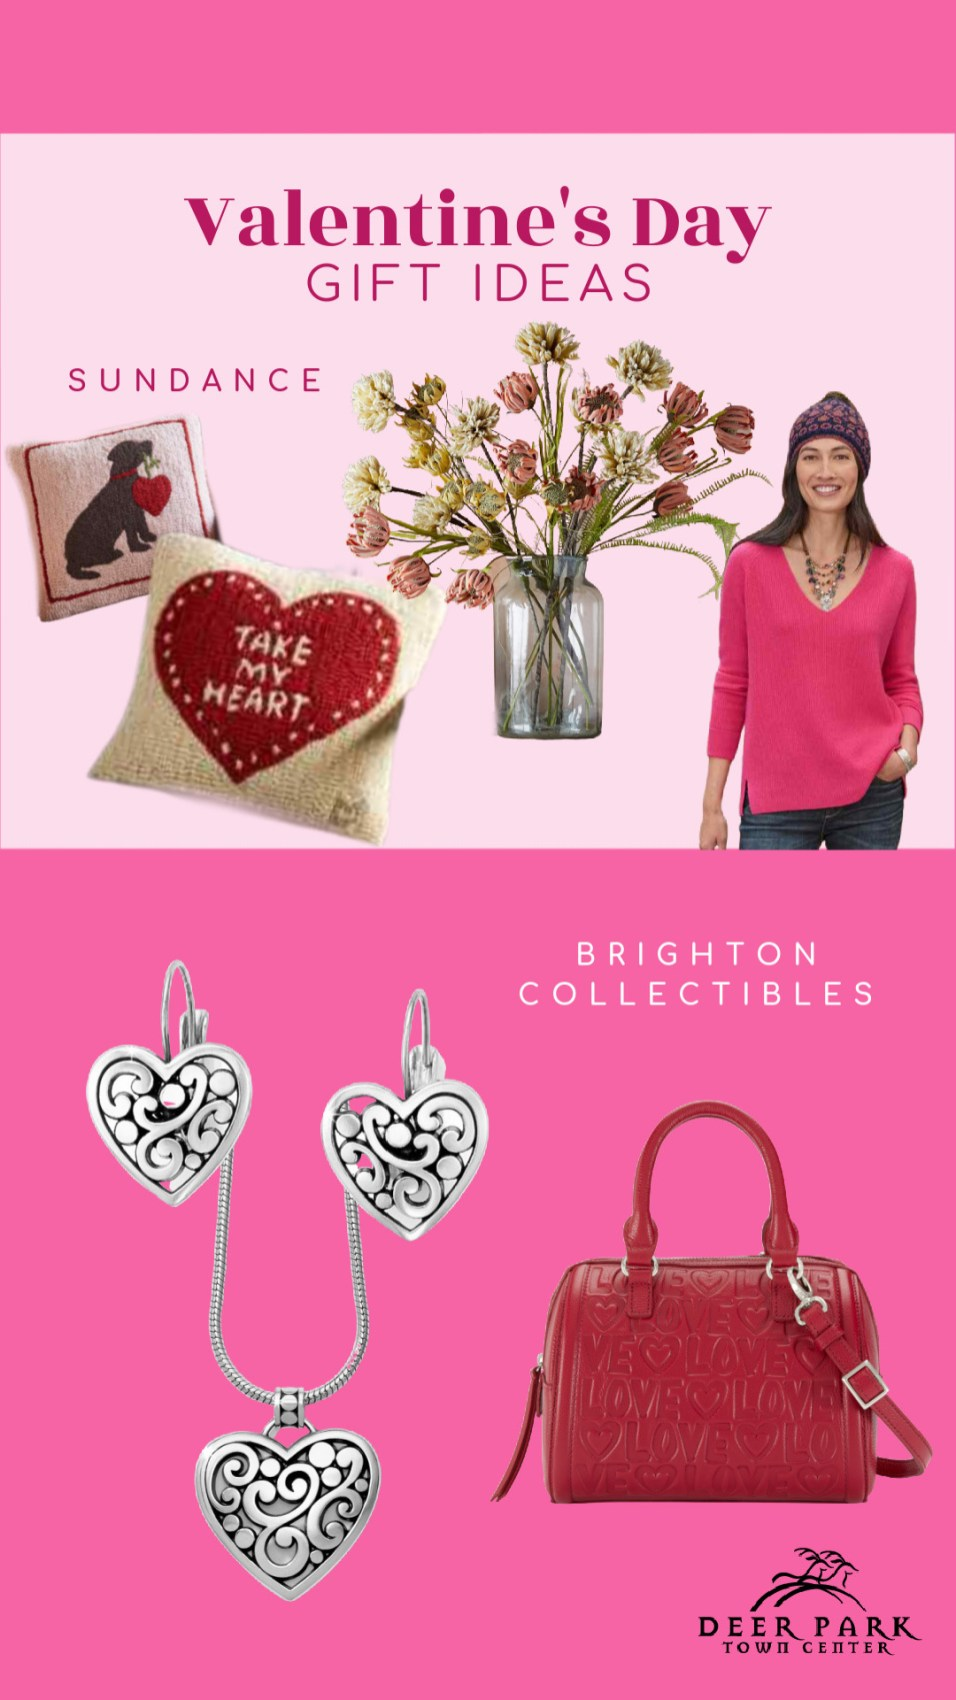 Deer Park Town Center - Valentine's Day Gifts 2021 - 1